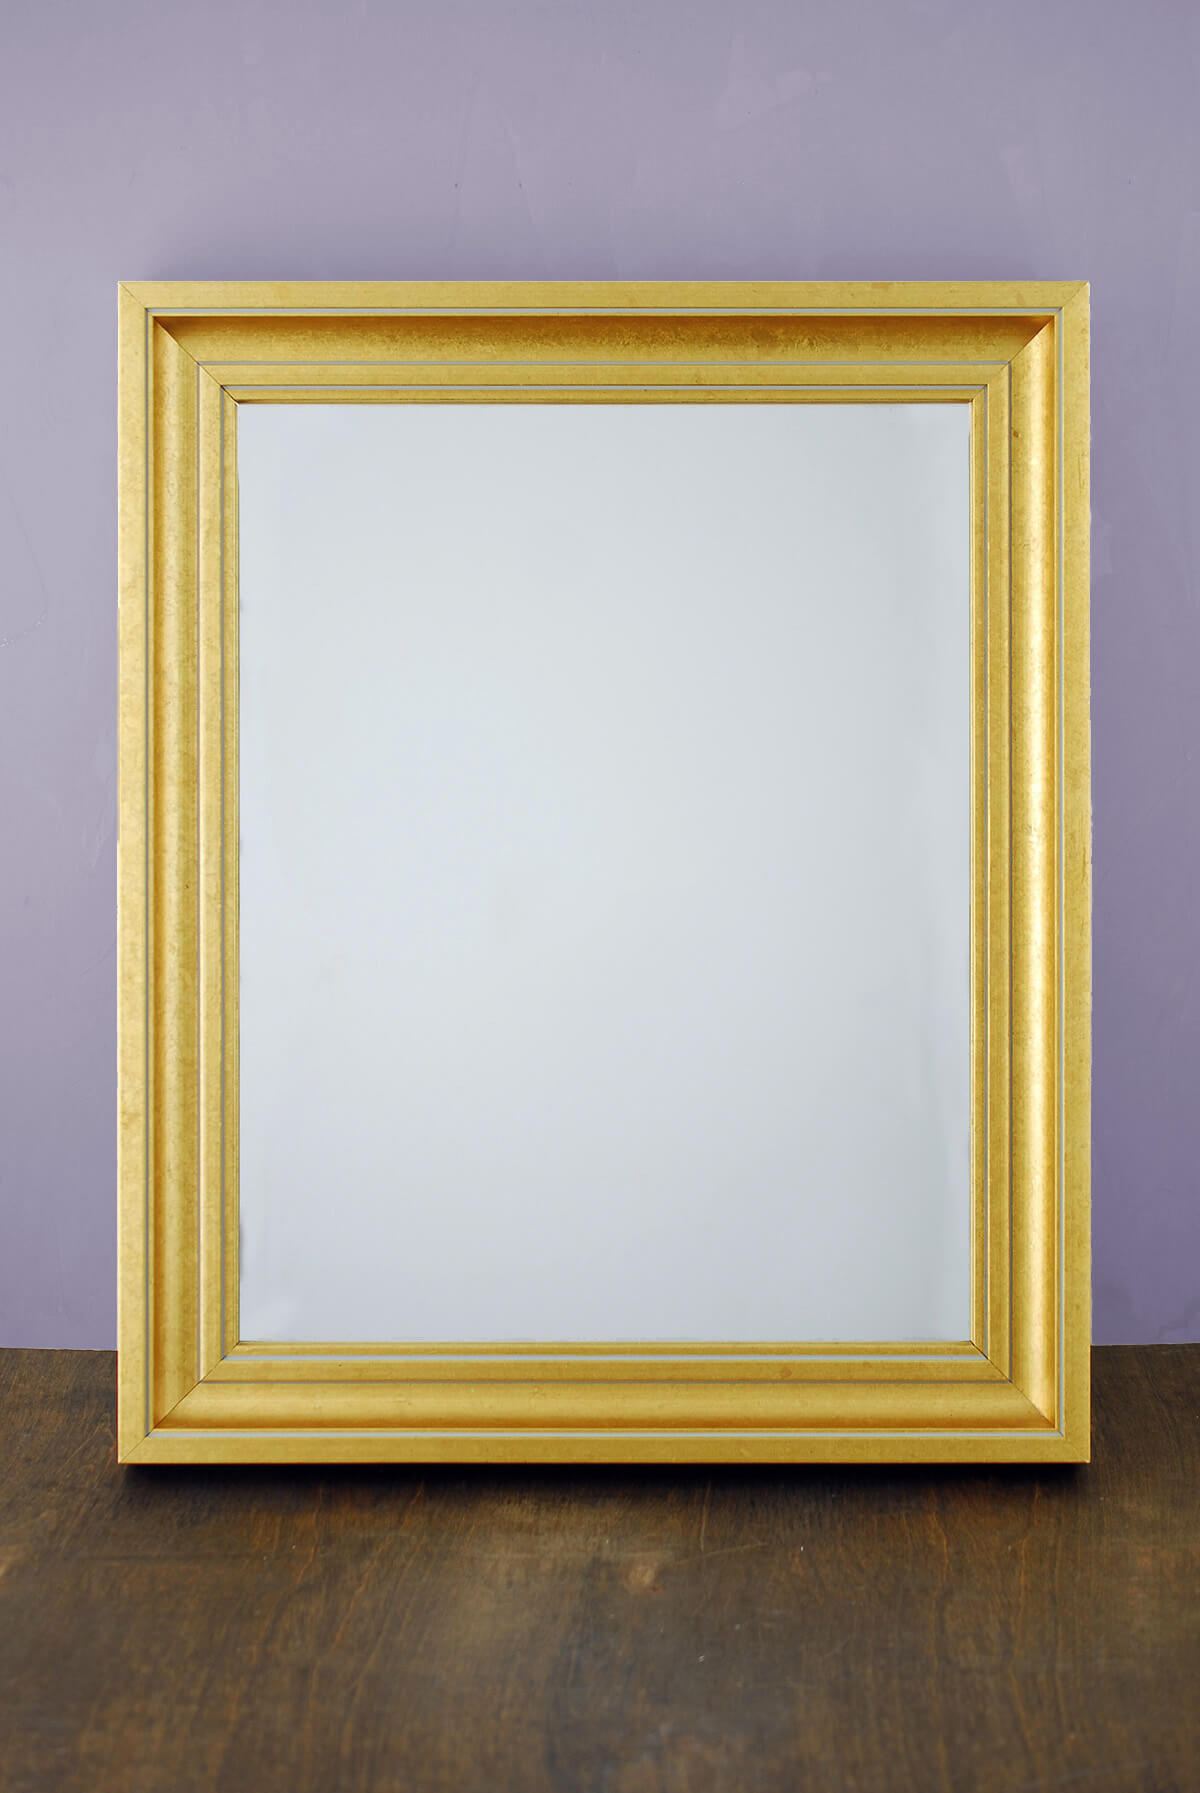 Framed mirror gold for Gold wall mirror